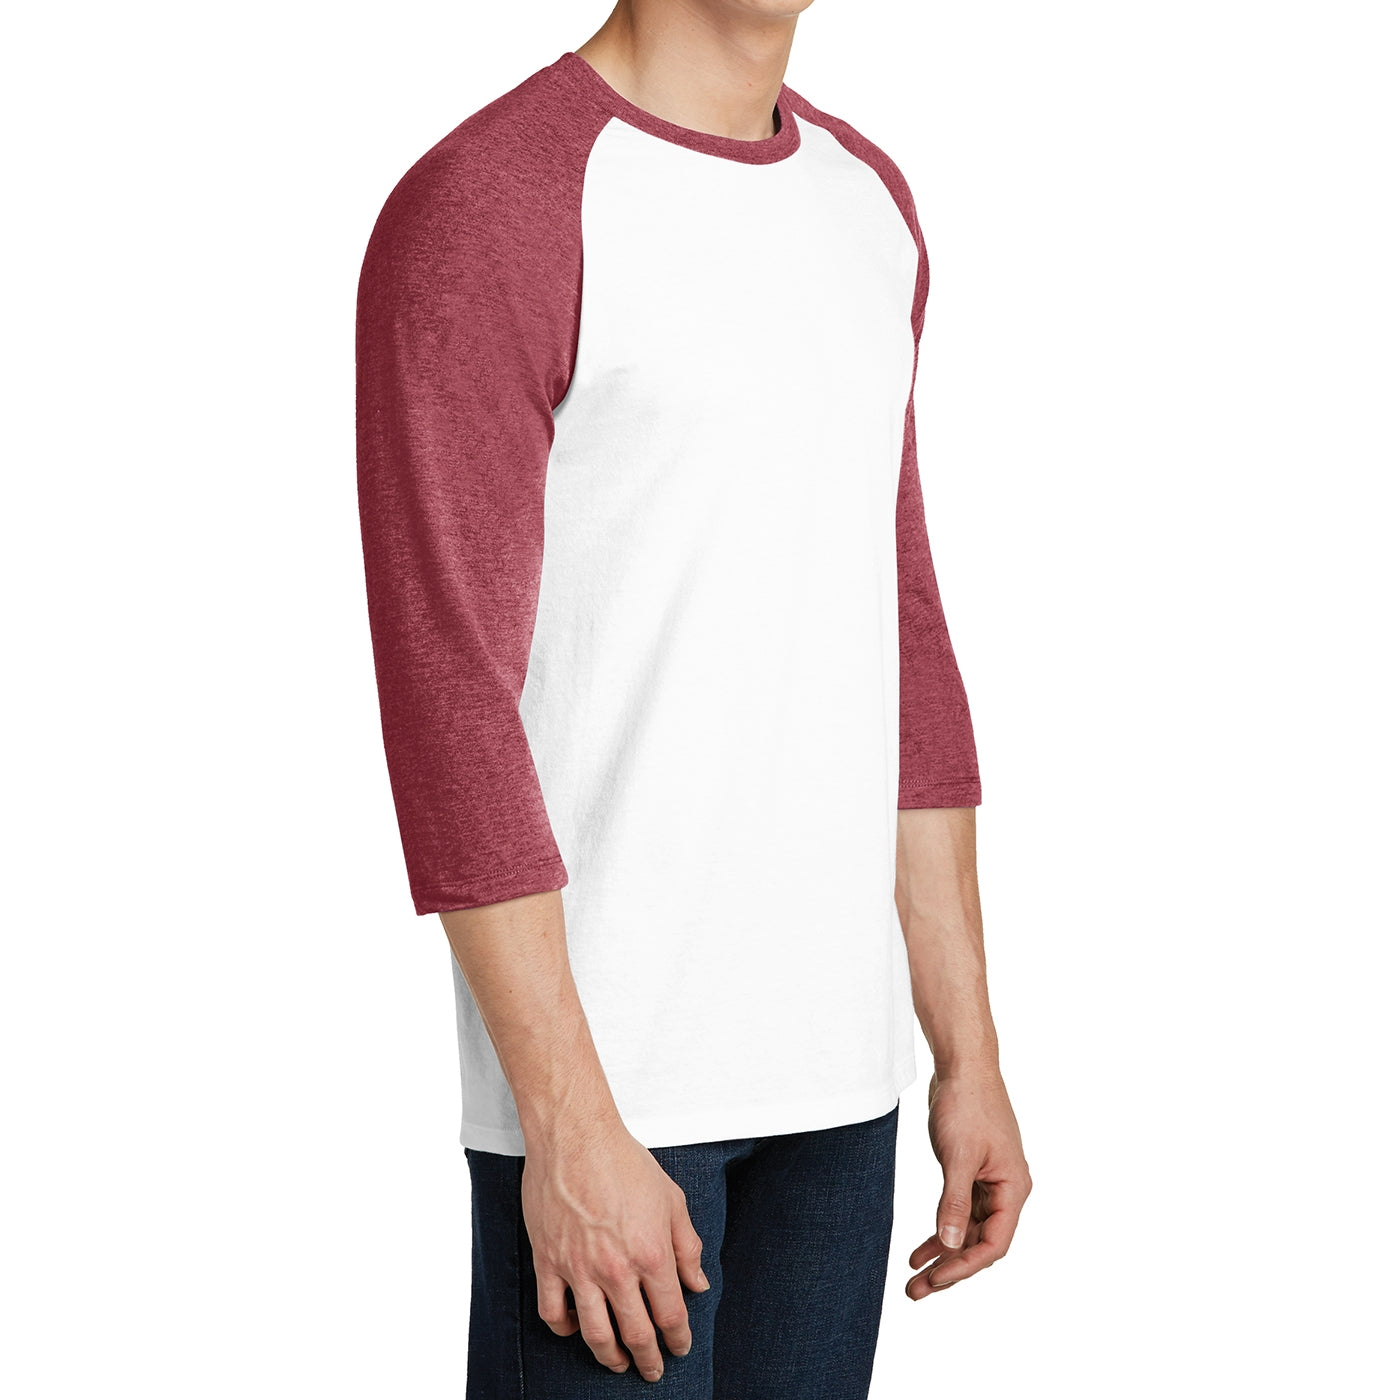 Men's Young  Very Important Tee 3/4-Sleeve Raglan - Heathered Red/ White